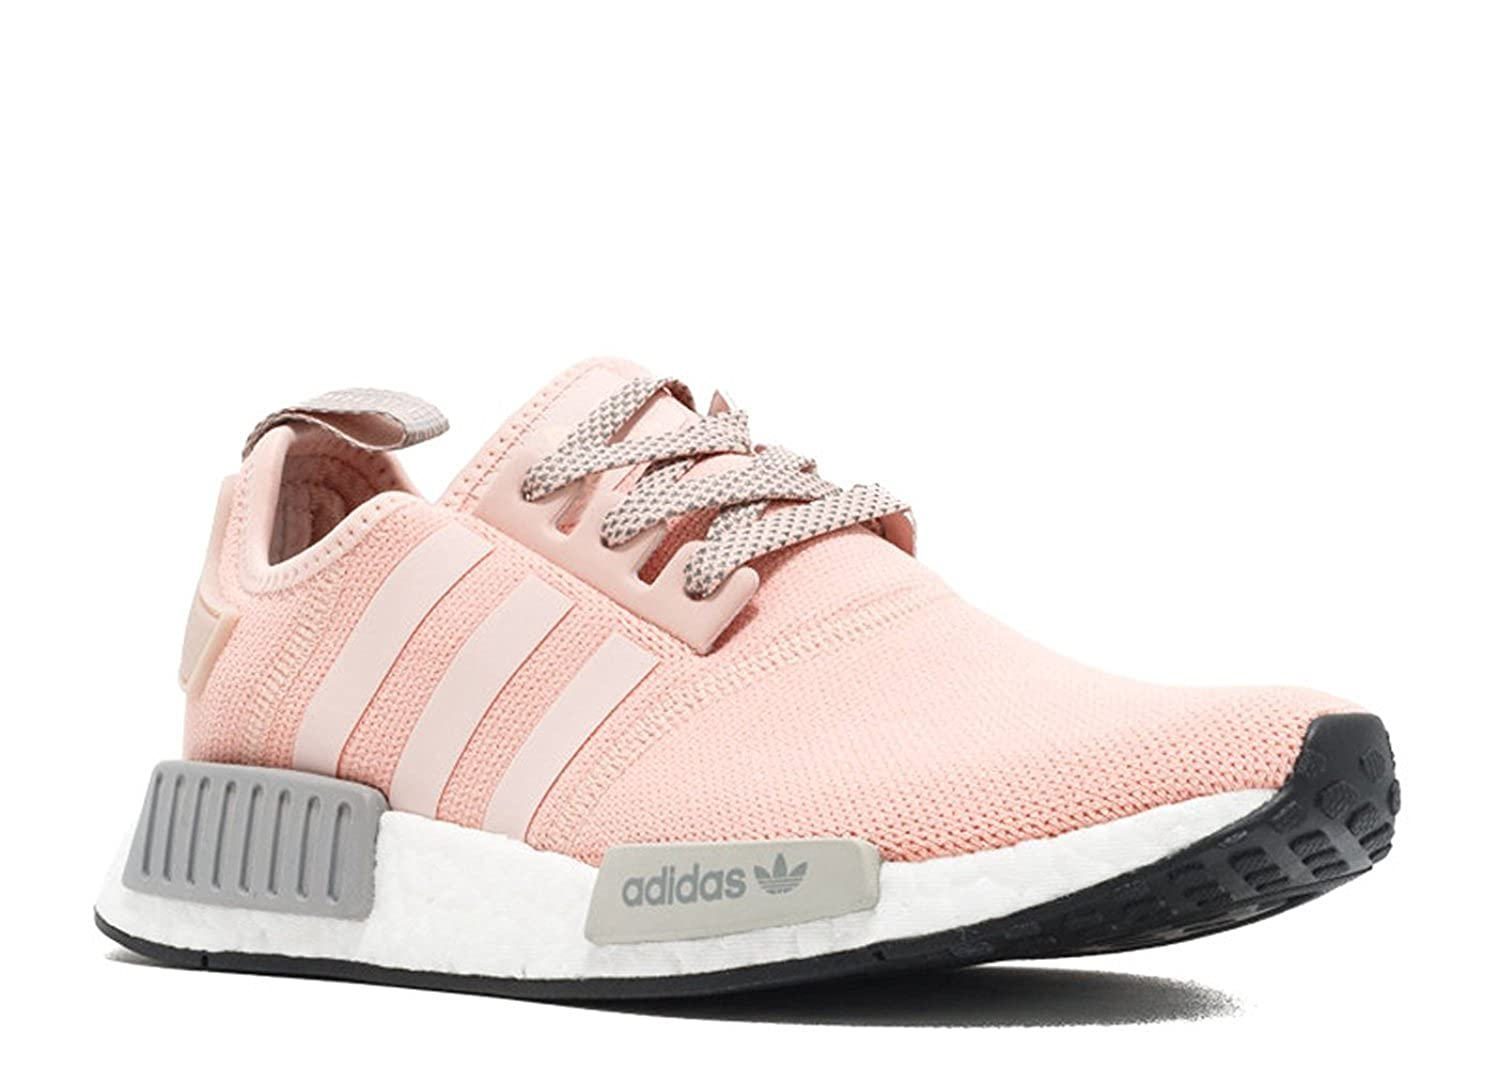 c3897d558a0 adidas NMD R1 Womens Offspring BY3059 Vapour Pink Light Onix US 6.5   Amazon.co.uk  Shoes   Bags